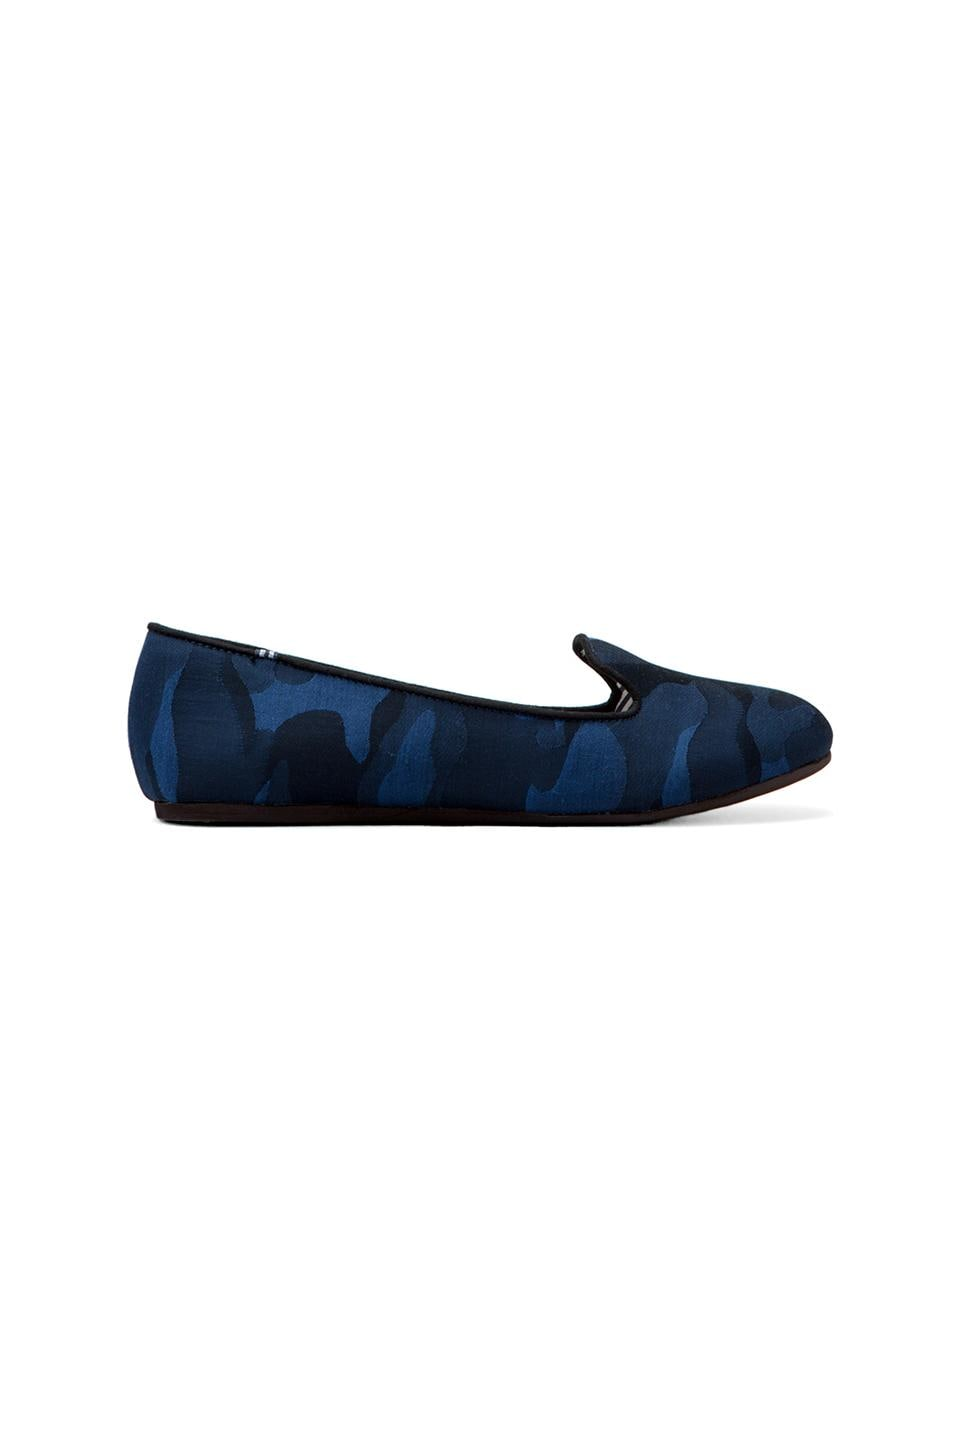 Charles Philip Shanghai Sheila Silk Camo Flat in Military Blue